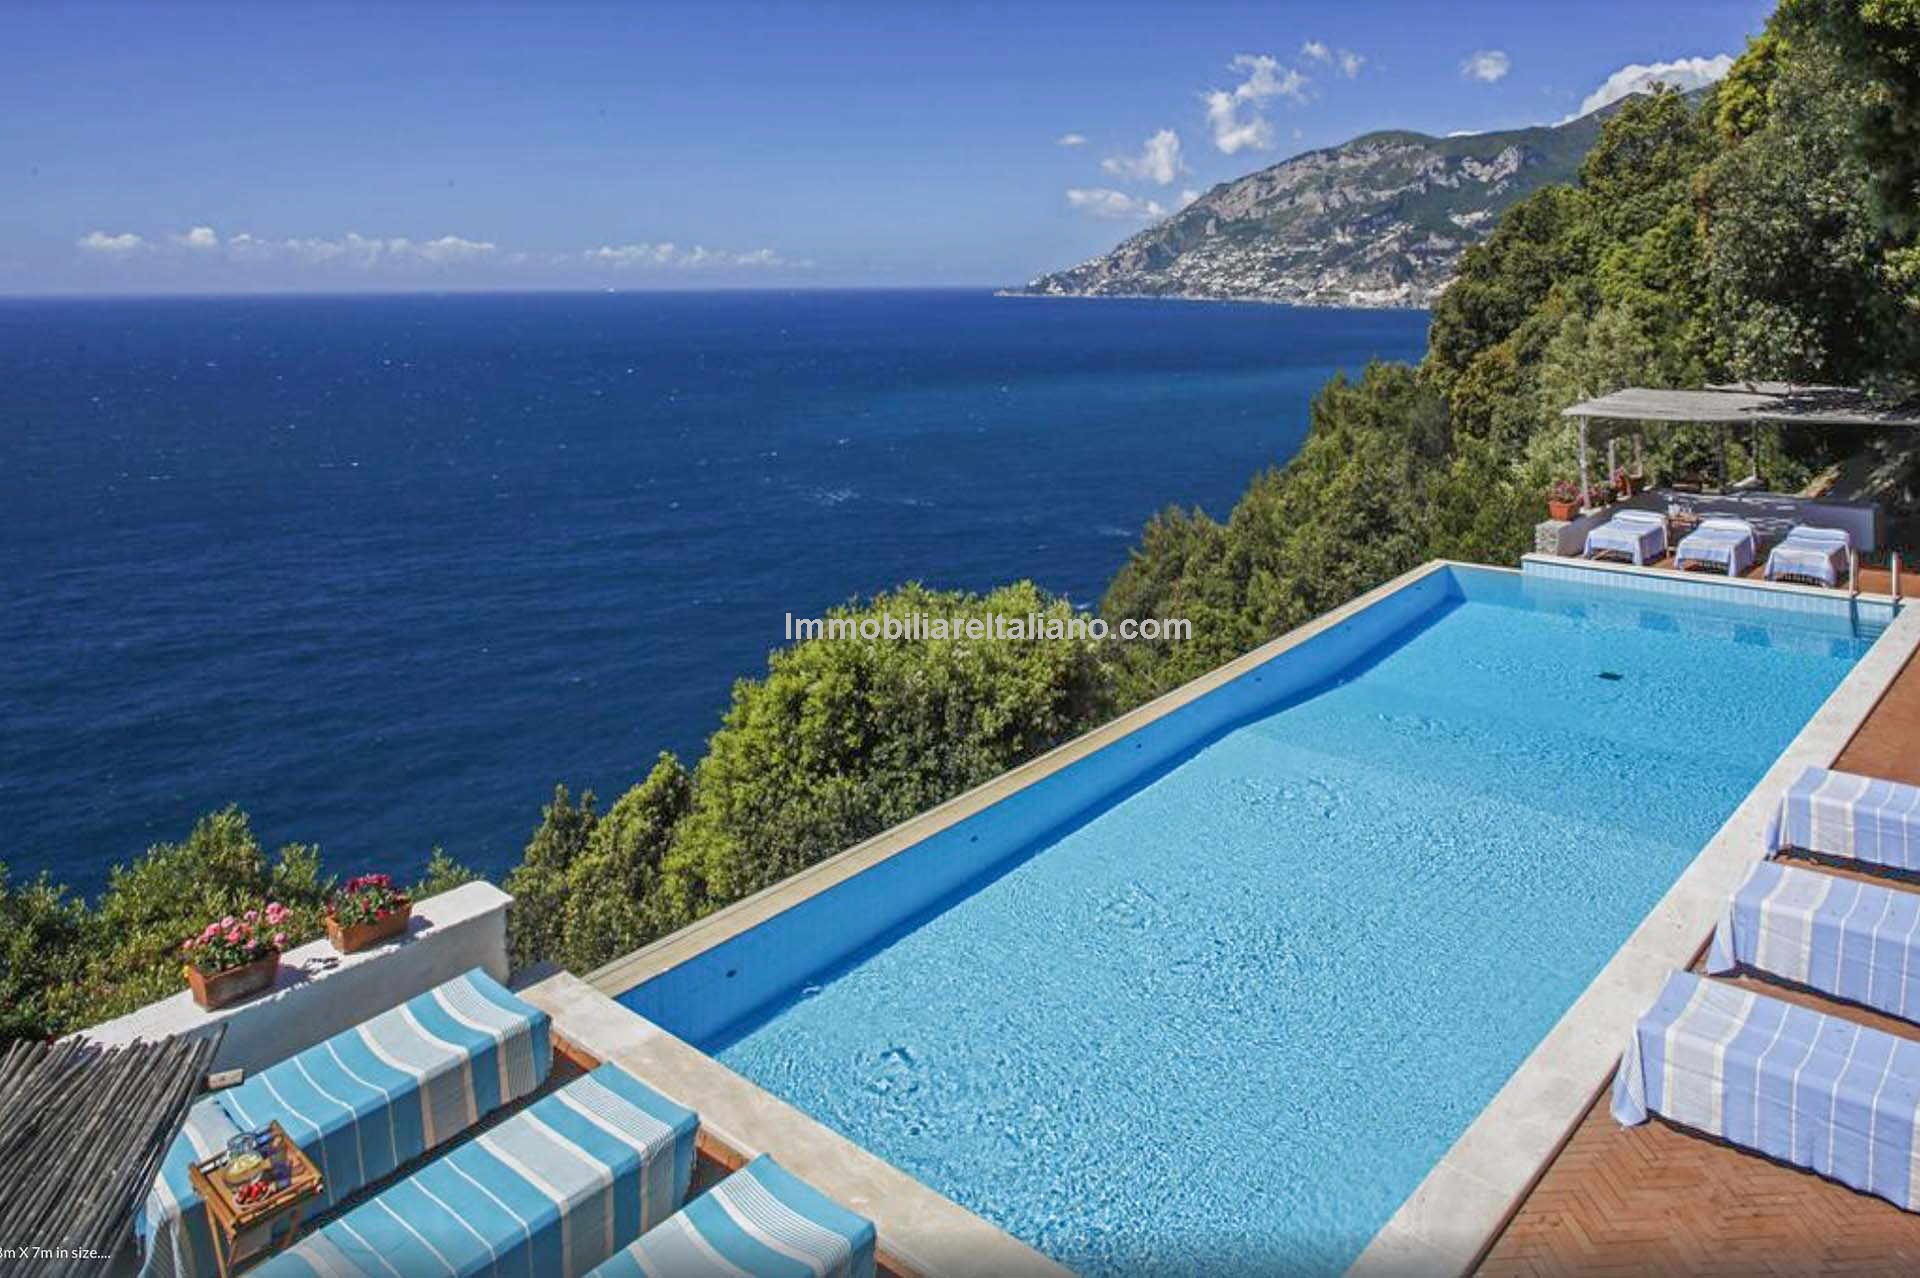 pool view of Amalfi coast villa for sale